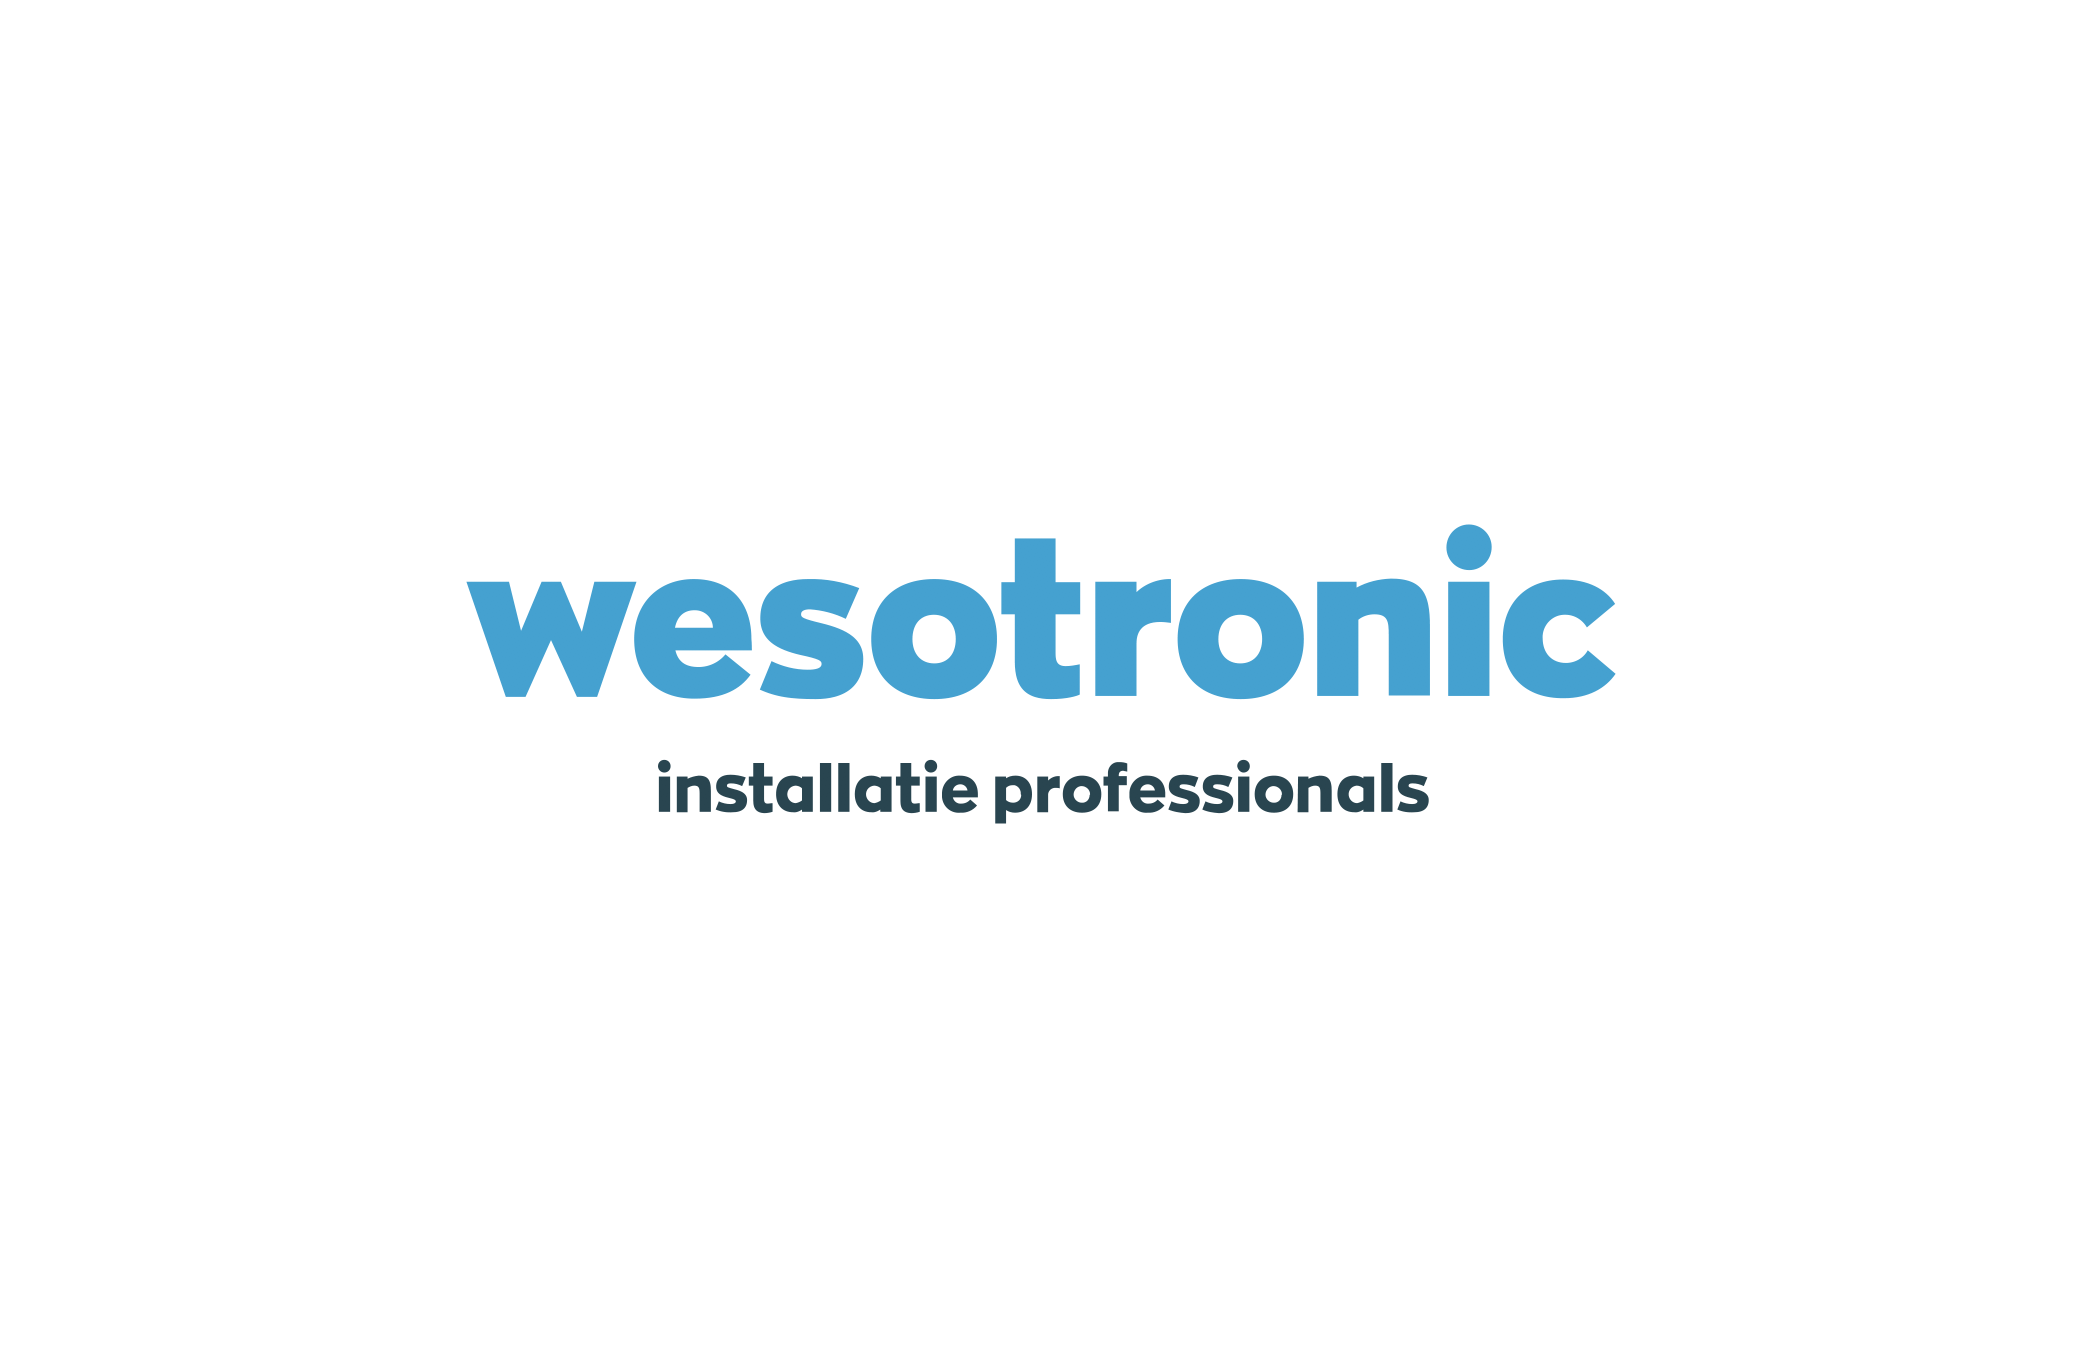 Wesotronic